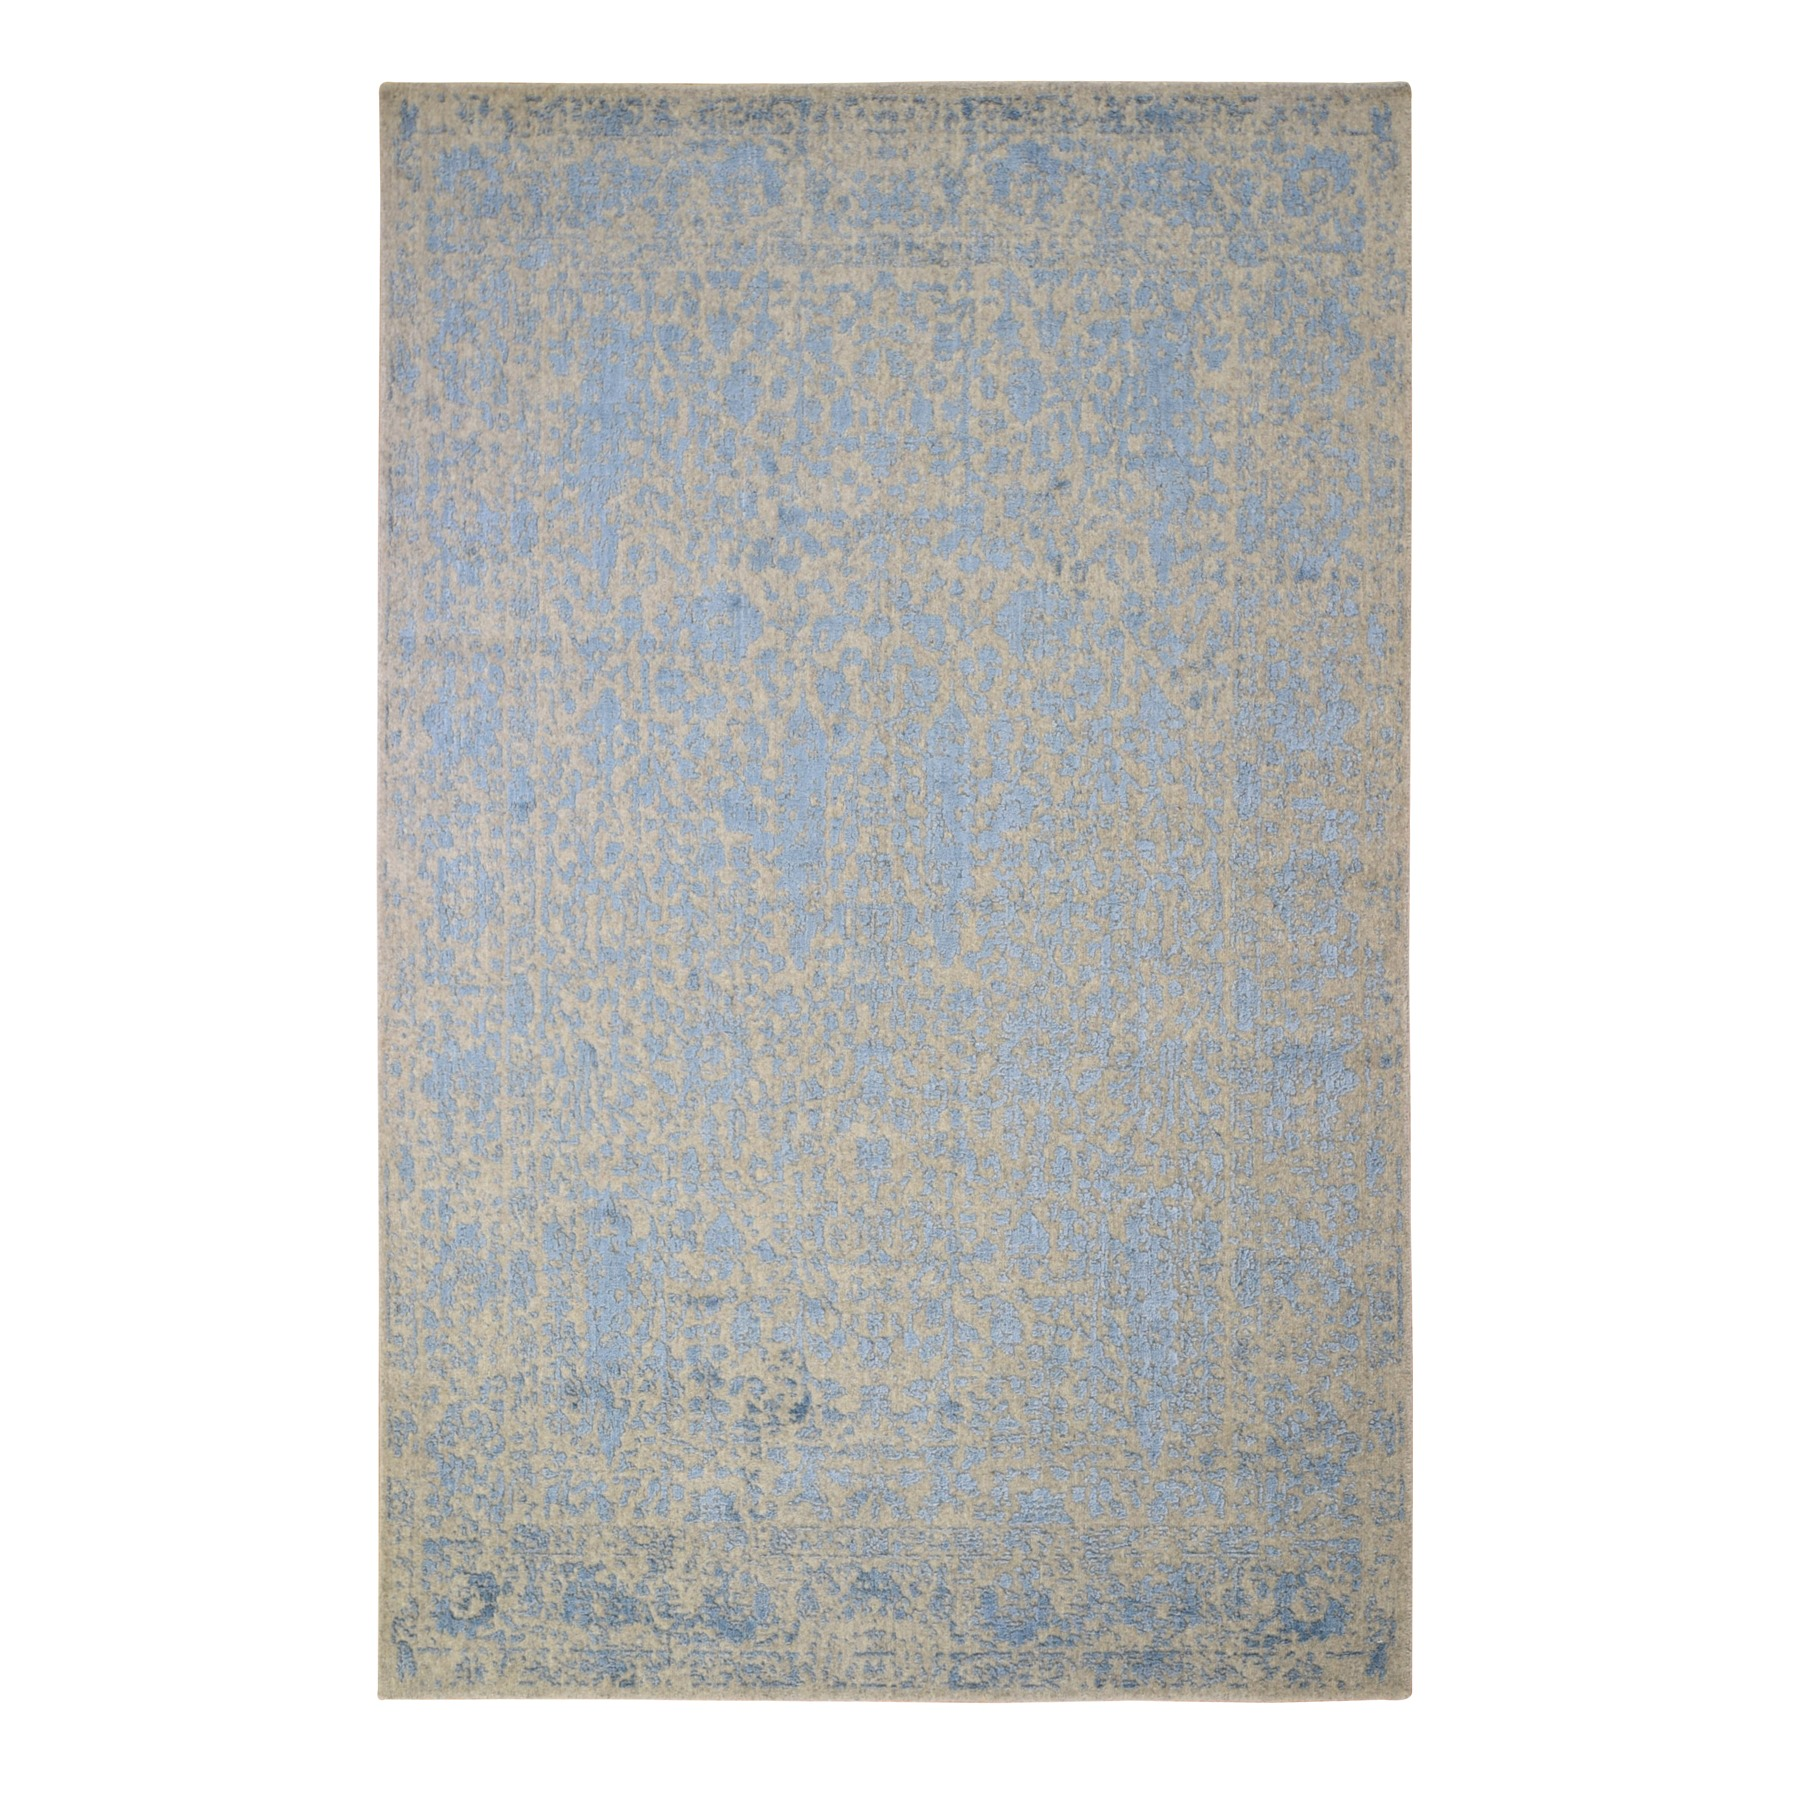 Transitional Hand Loomed Blue Rug No: 1119524